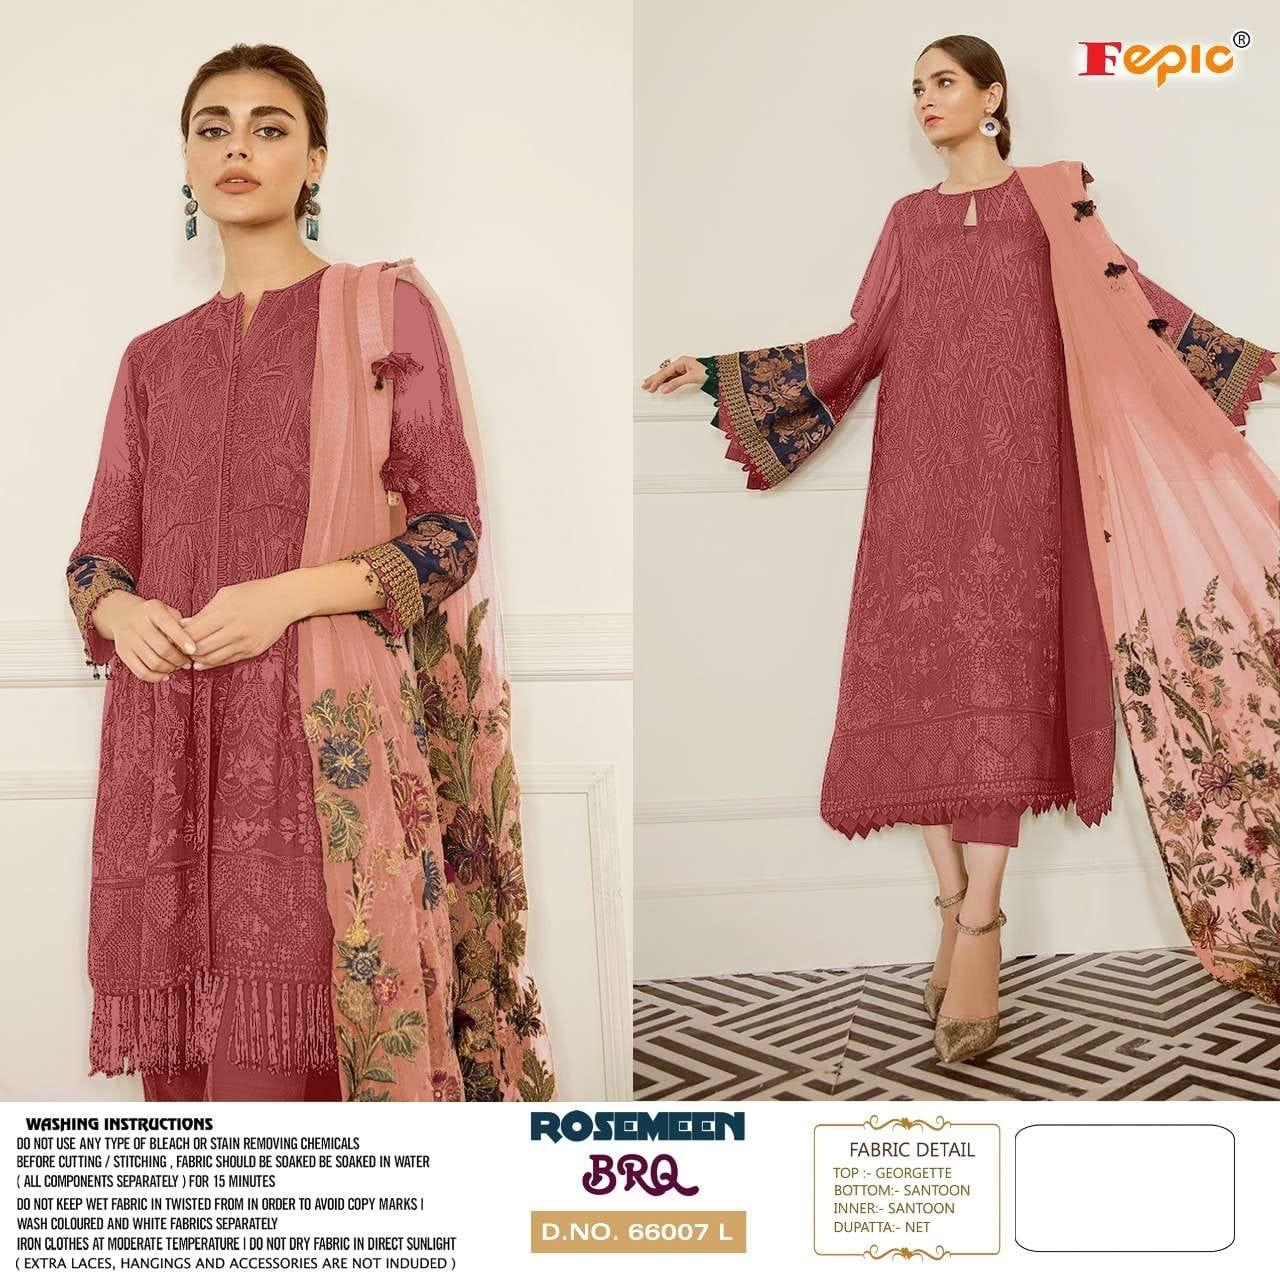 Fepic Rosemeen Brq Stylish Georgette  Pakistani Suit Catalog at Wholesale rate